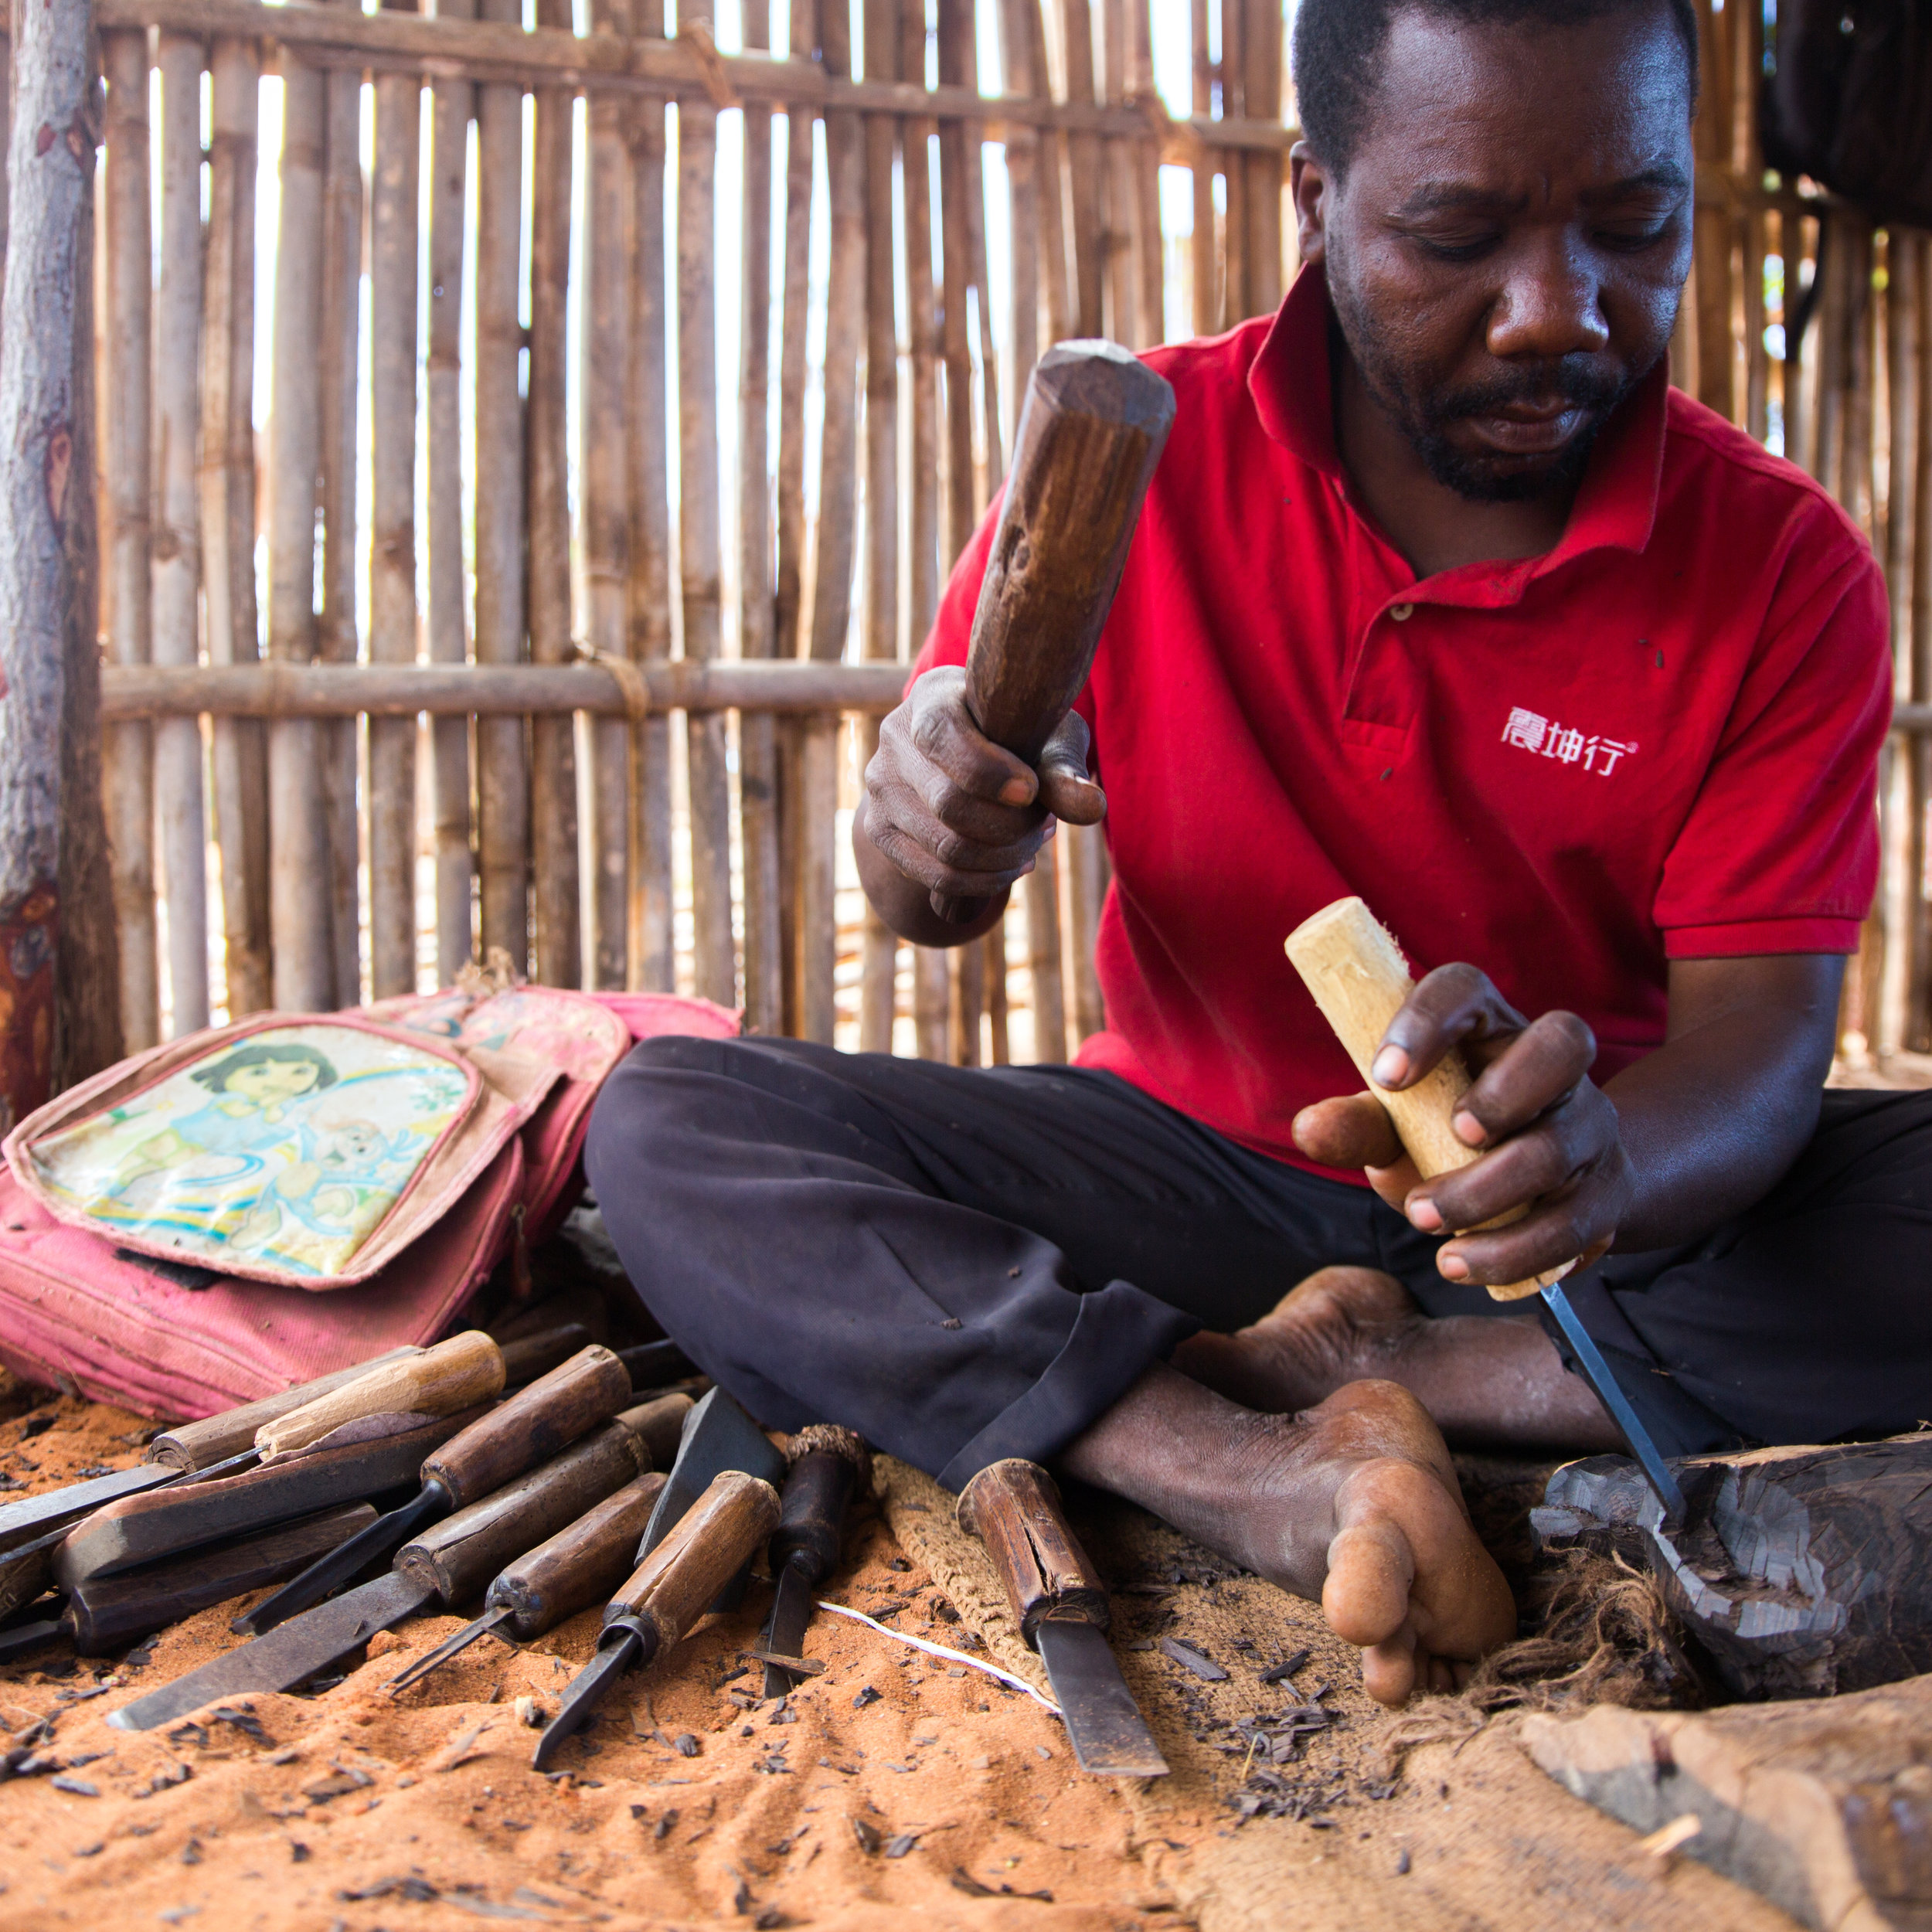 Stuart and the Mekonde Woodcarvers   At 42 years of age, Suart Hussein Madiva has been carving wood for most of his life. He was born in Muidumbe, and is one of the famous Mekonde carvers from northern Mozambique and southern Tanzania. In 1987 Stuart began studying wood carving at the Begamoyo Sculpture School in Tanzania, and a few years later was also one of their teachers. He lives close to Malucu Marruma with his wife and their four children - Monica, 25; Sofia, 14; Robinsson, 12; and Elisabeth, 6.